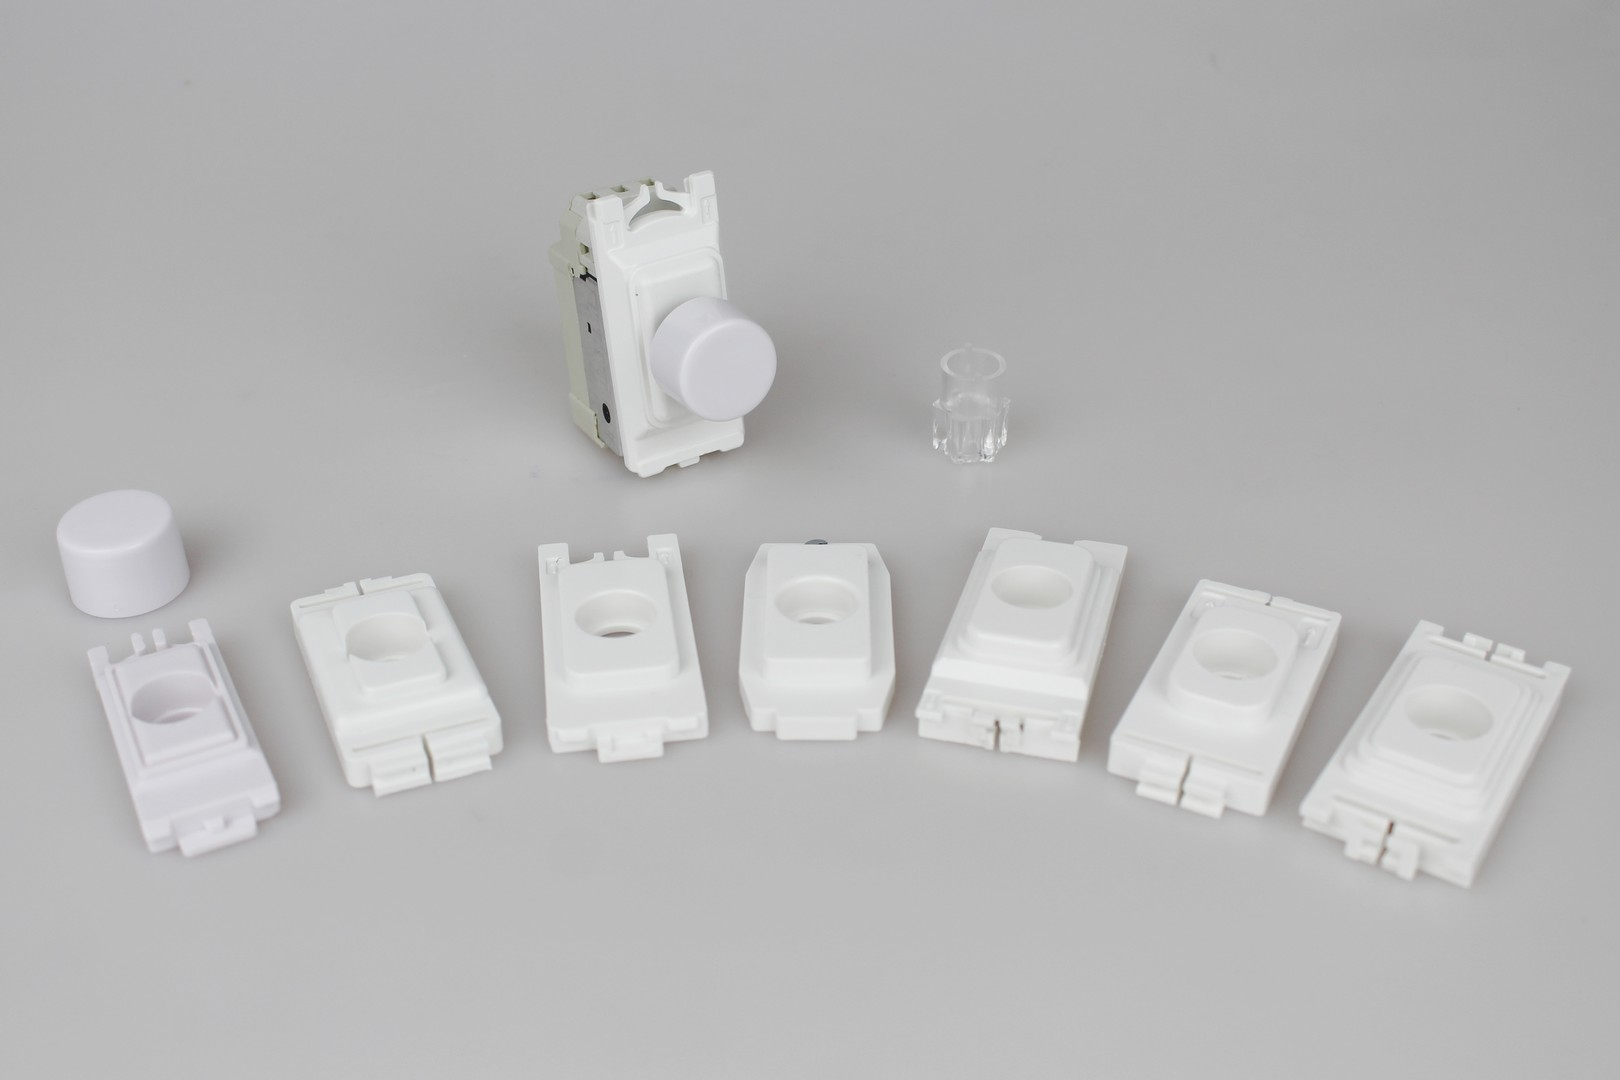 GPINTW.MG Varilight Non-dimming 'Intermediate Dummy' Series White Power Grid Module, 3 Way Up To 1000 Watt Module